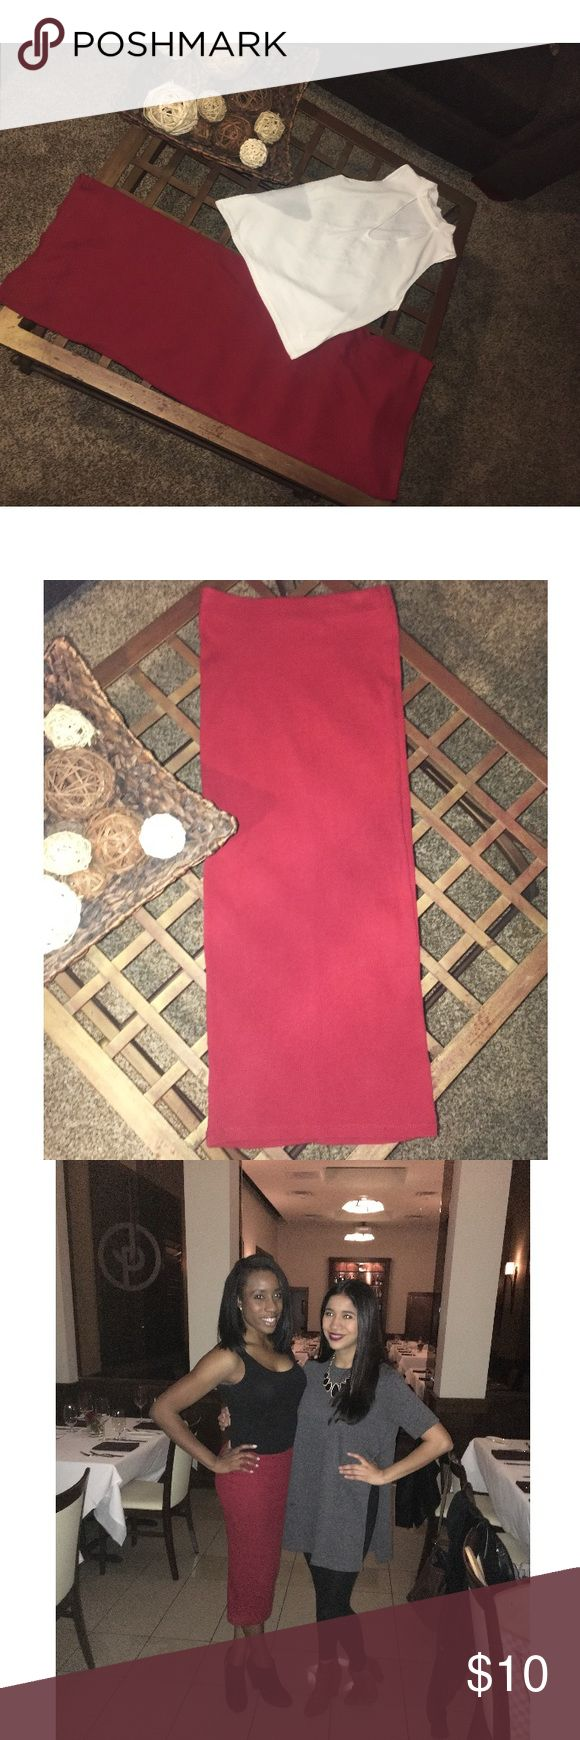 High Waist Zara Pencil/Tube Skirt High-waisted or wear at your hips for length. Form-fitting. Burnt Orange/Ted color tone. You can style with just about any top, statement jewelry and shoes! Zara Skirts Pencil